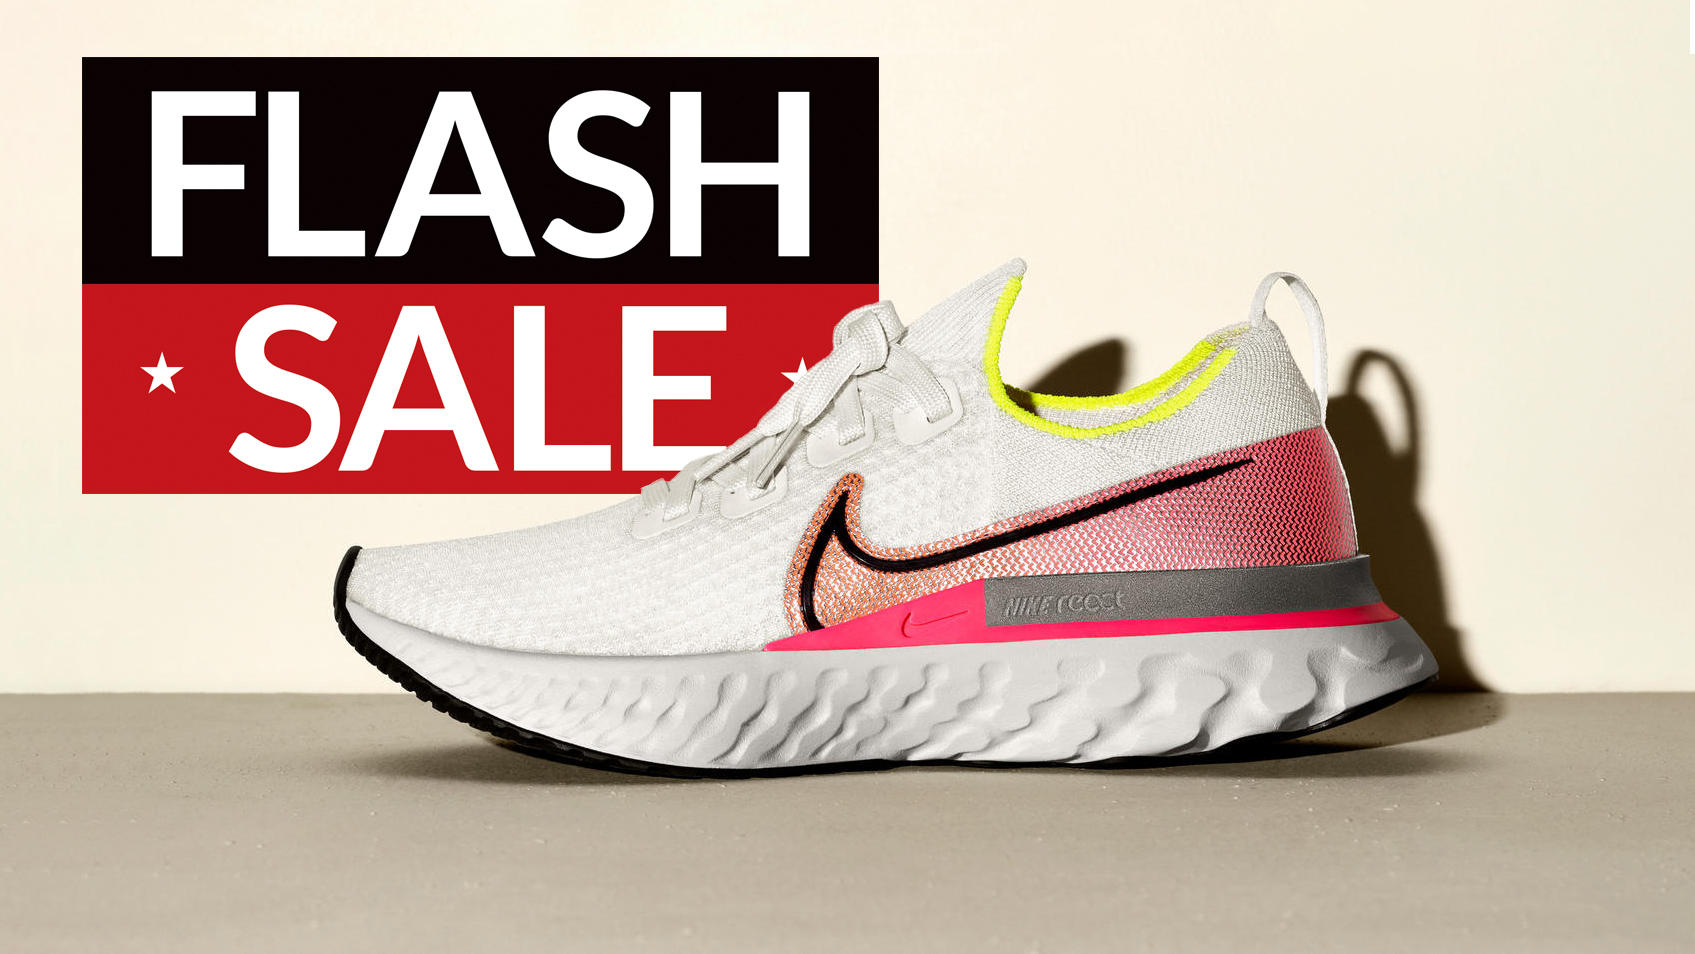 Nike Sale: Get 22% off ALL sneakers and